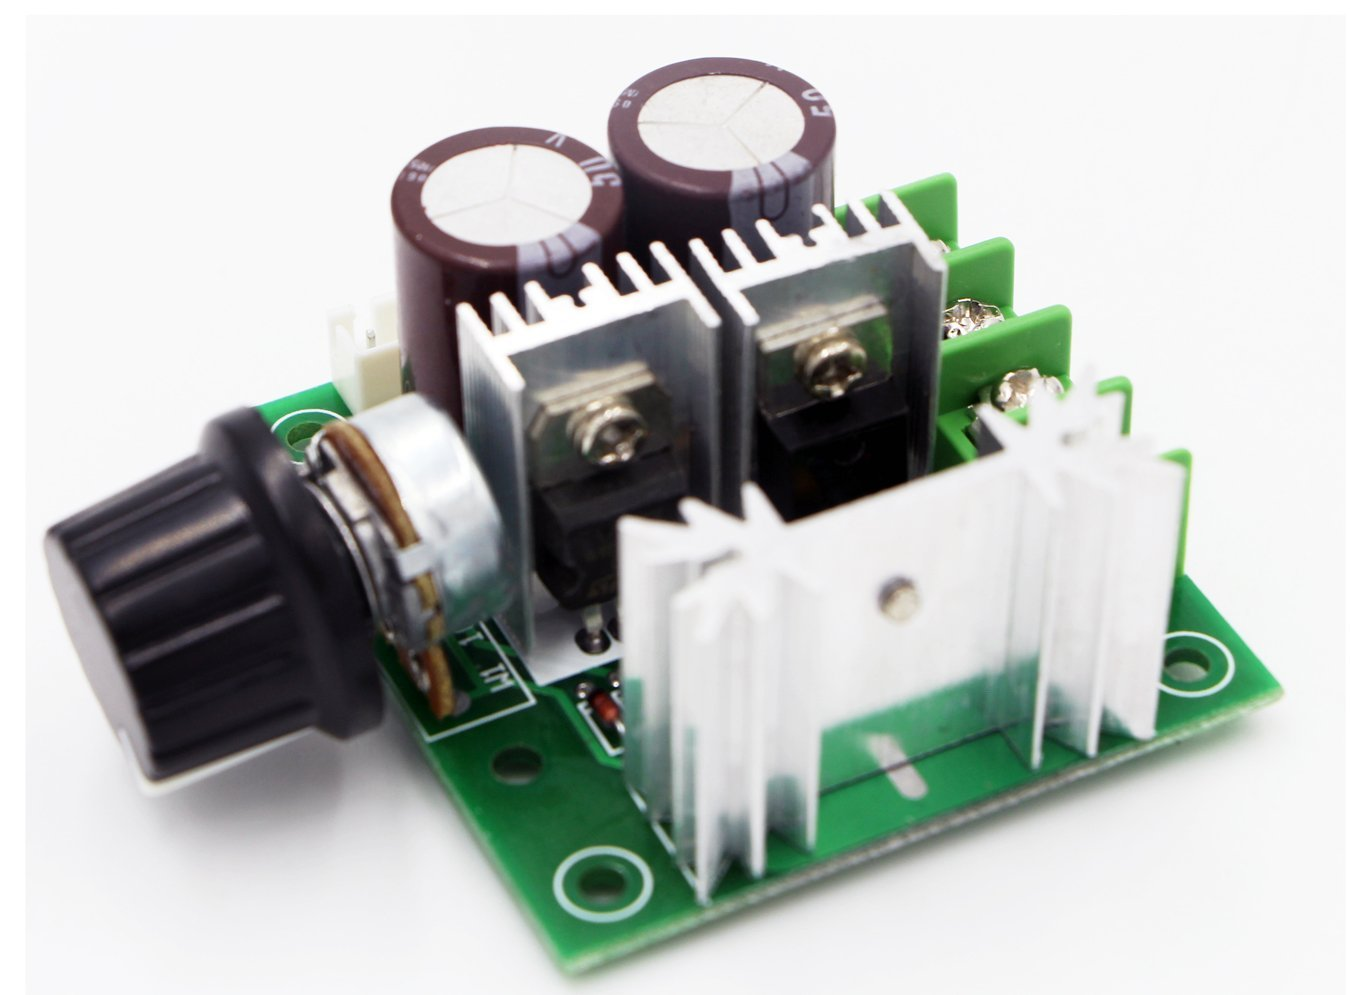 Riorand 12v 40v 10a Pwm Dc Motor Speed Controller With Knob High The Series Forward And Reverse Above Can Efficiency Torque Low Heat Generating Polarity Protection Current